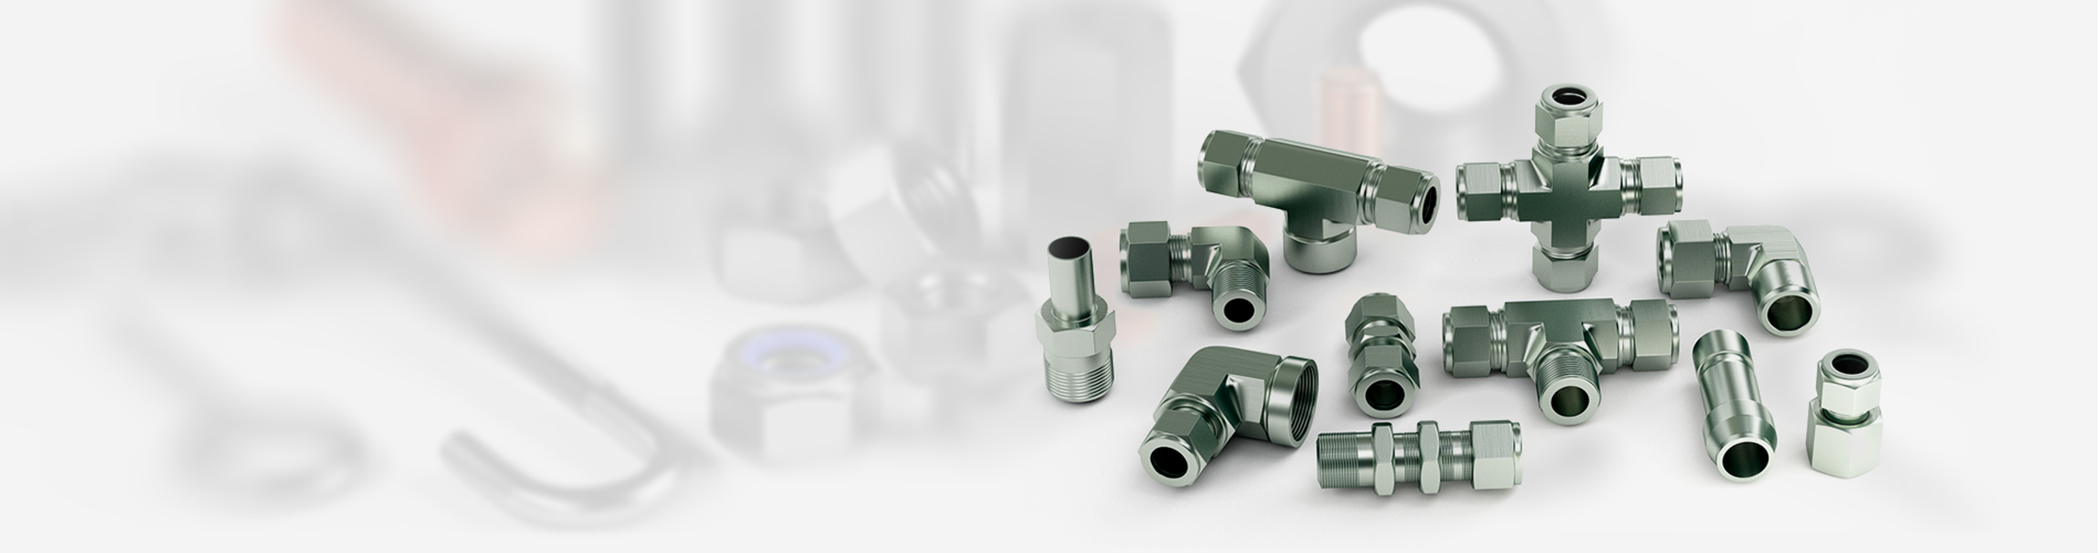 Exotic-Metal-Compression-Fittings